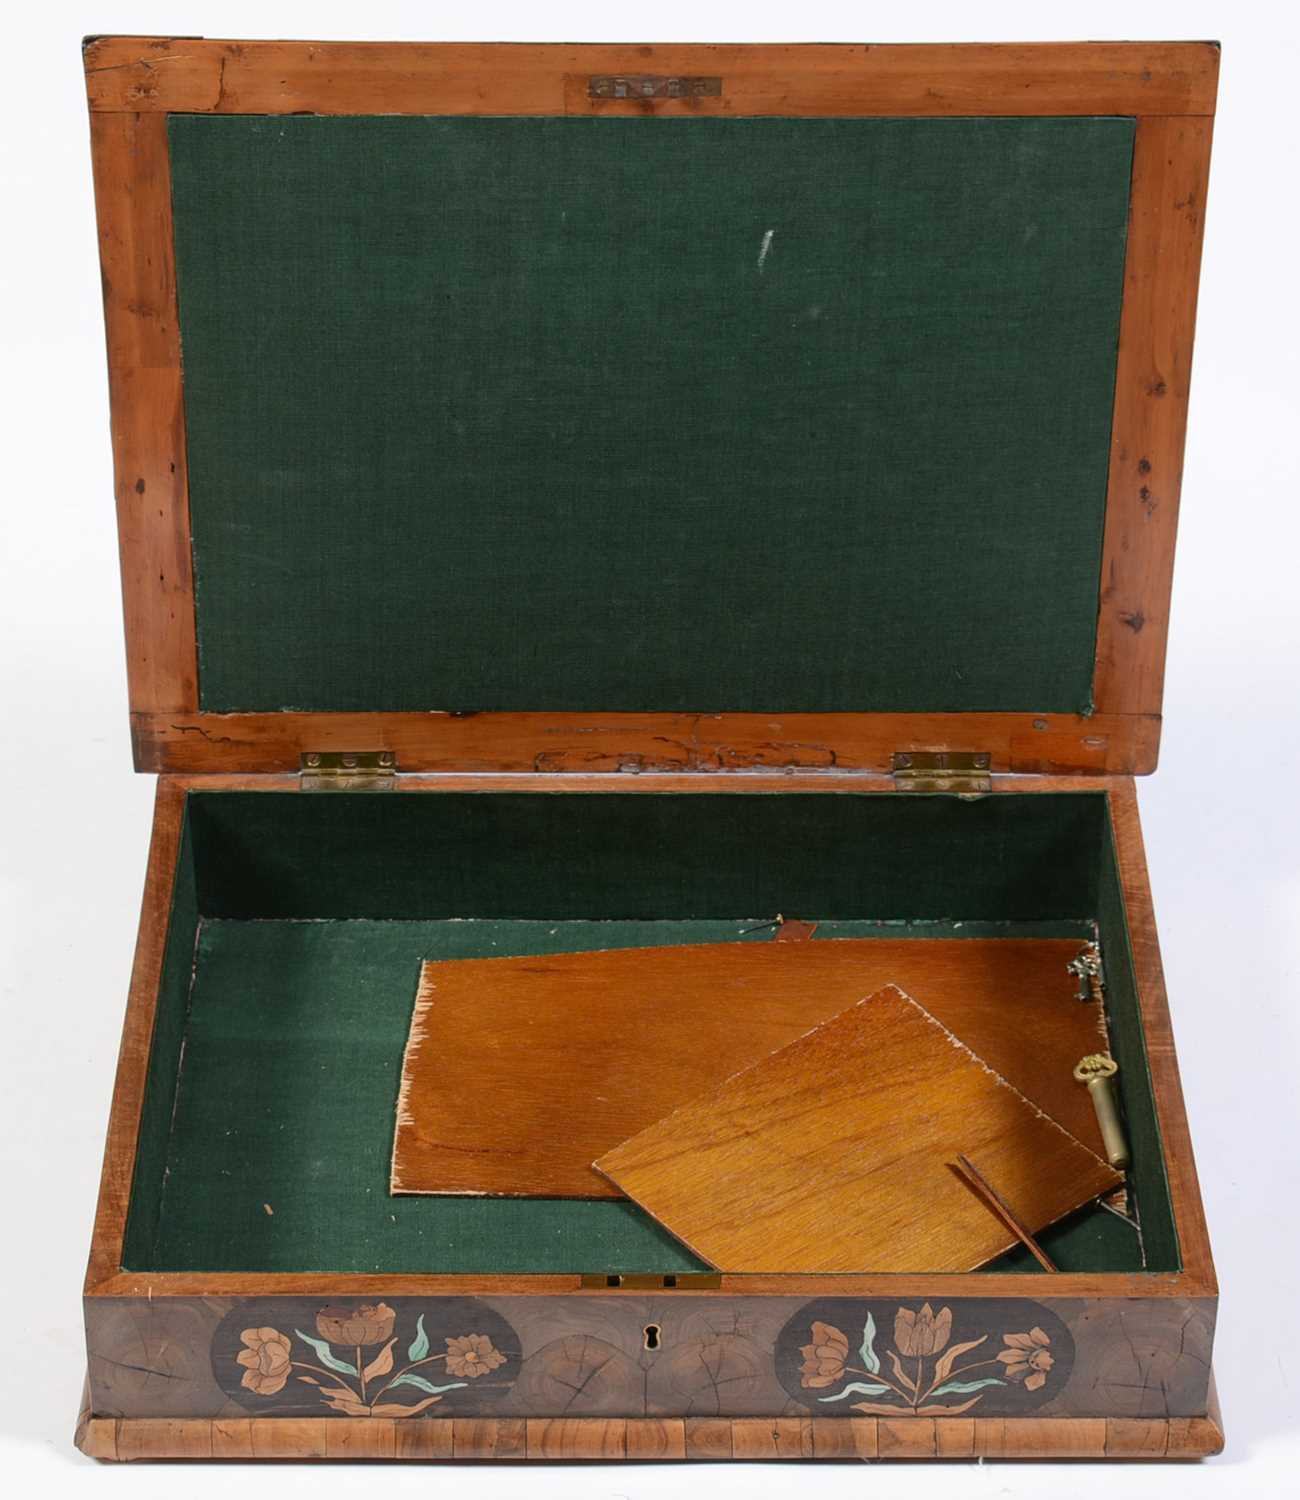 18th Century Dutch marquetry and oyster veneered lace box - Image 3 of 9